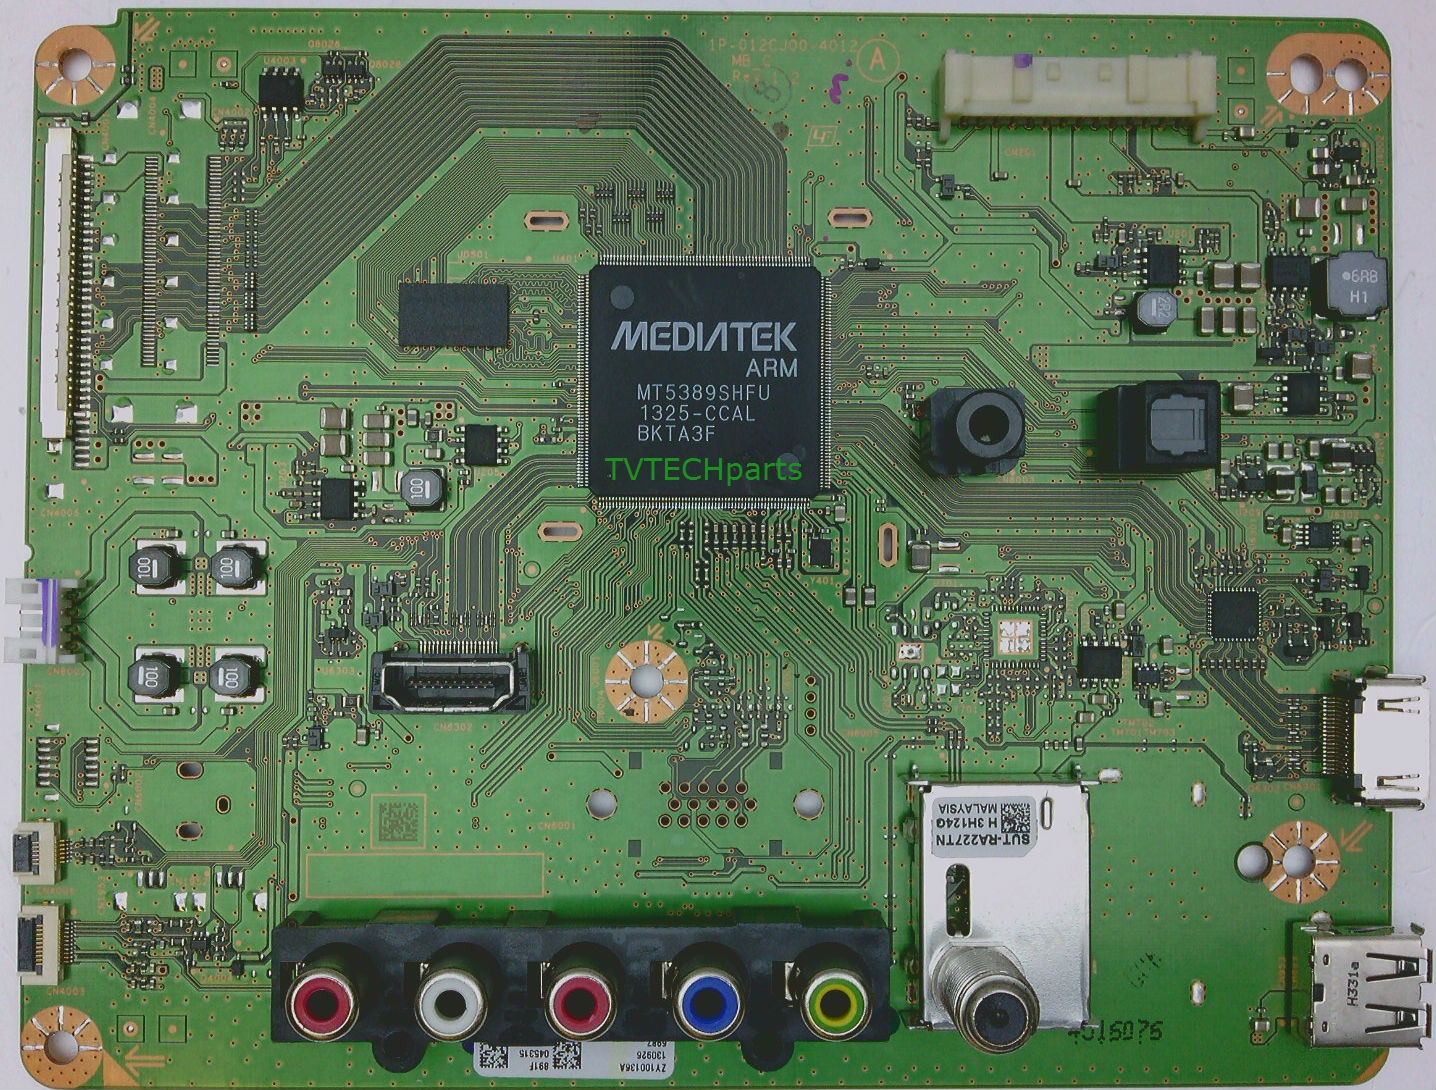 1-895-371-21 Main board for Sony KDL32R400A